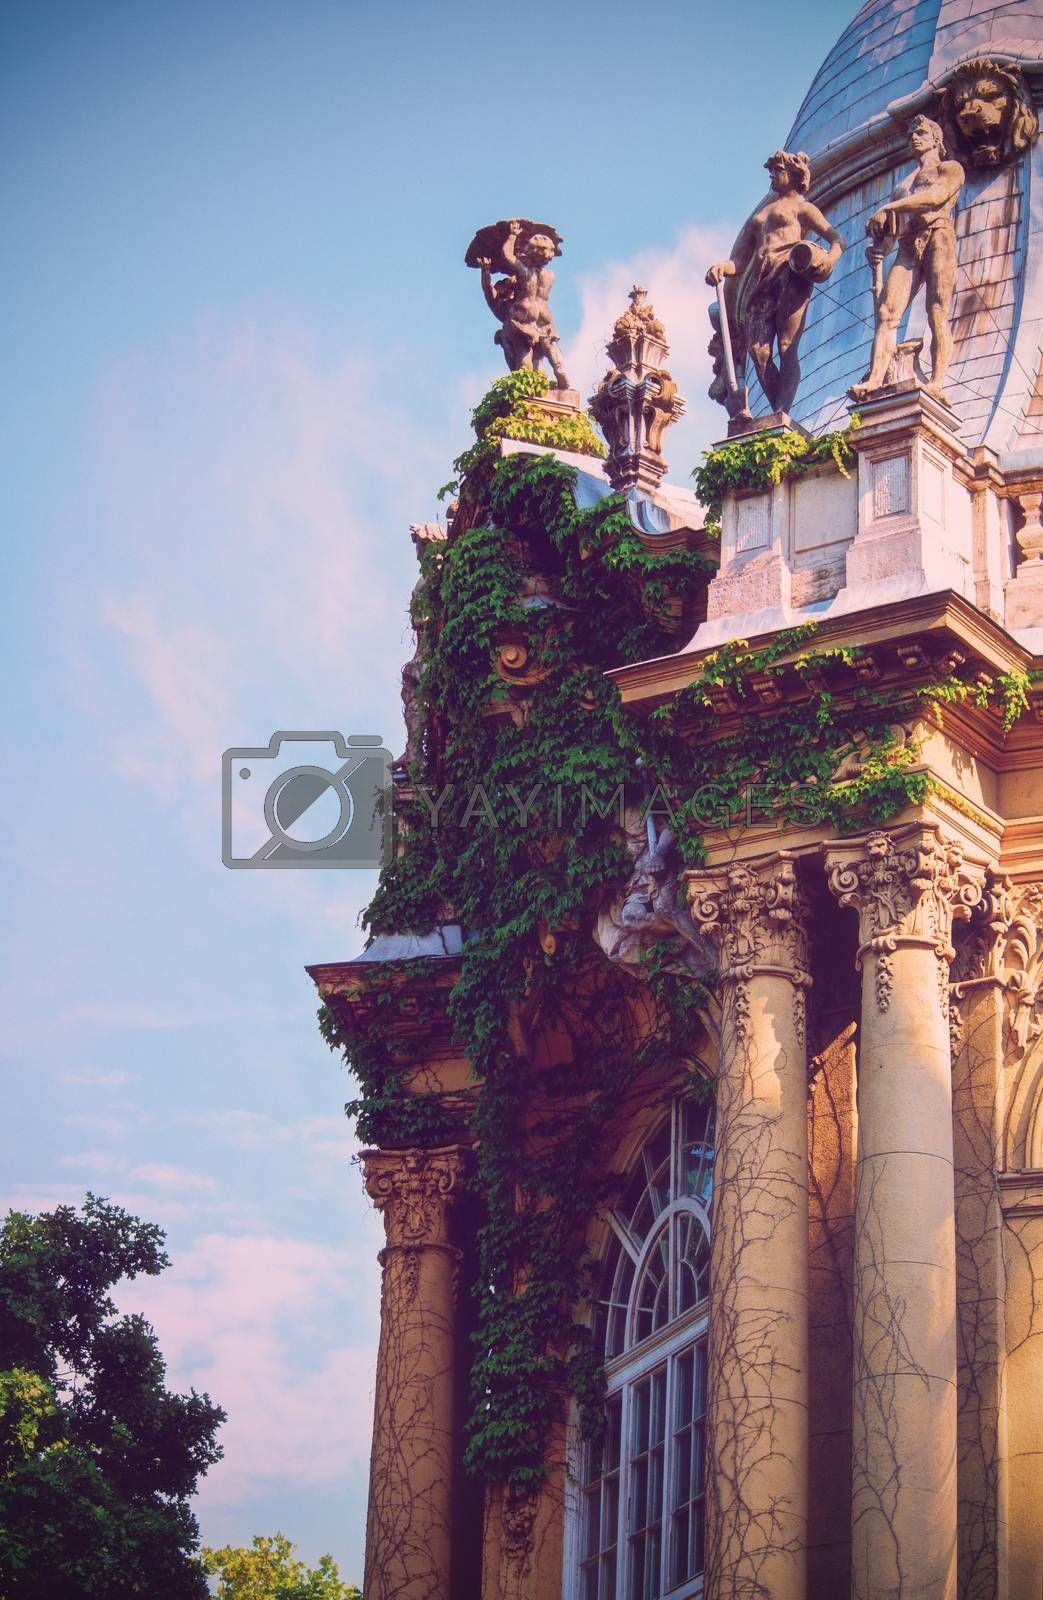 Beautiful side view of the pillars and sculptures of Vajdahunyad Castle, currently the agricultural museum in Budapest, Hungary.